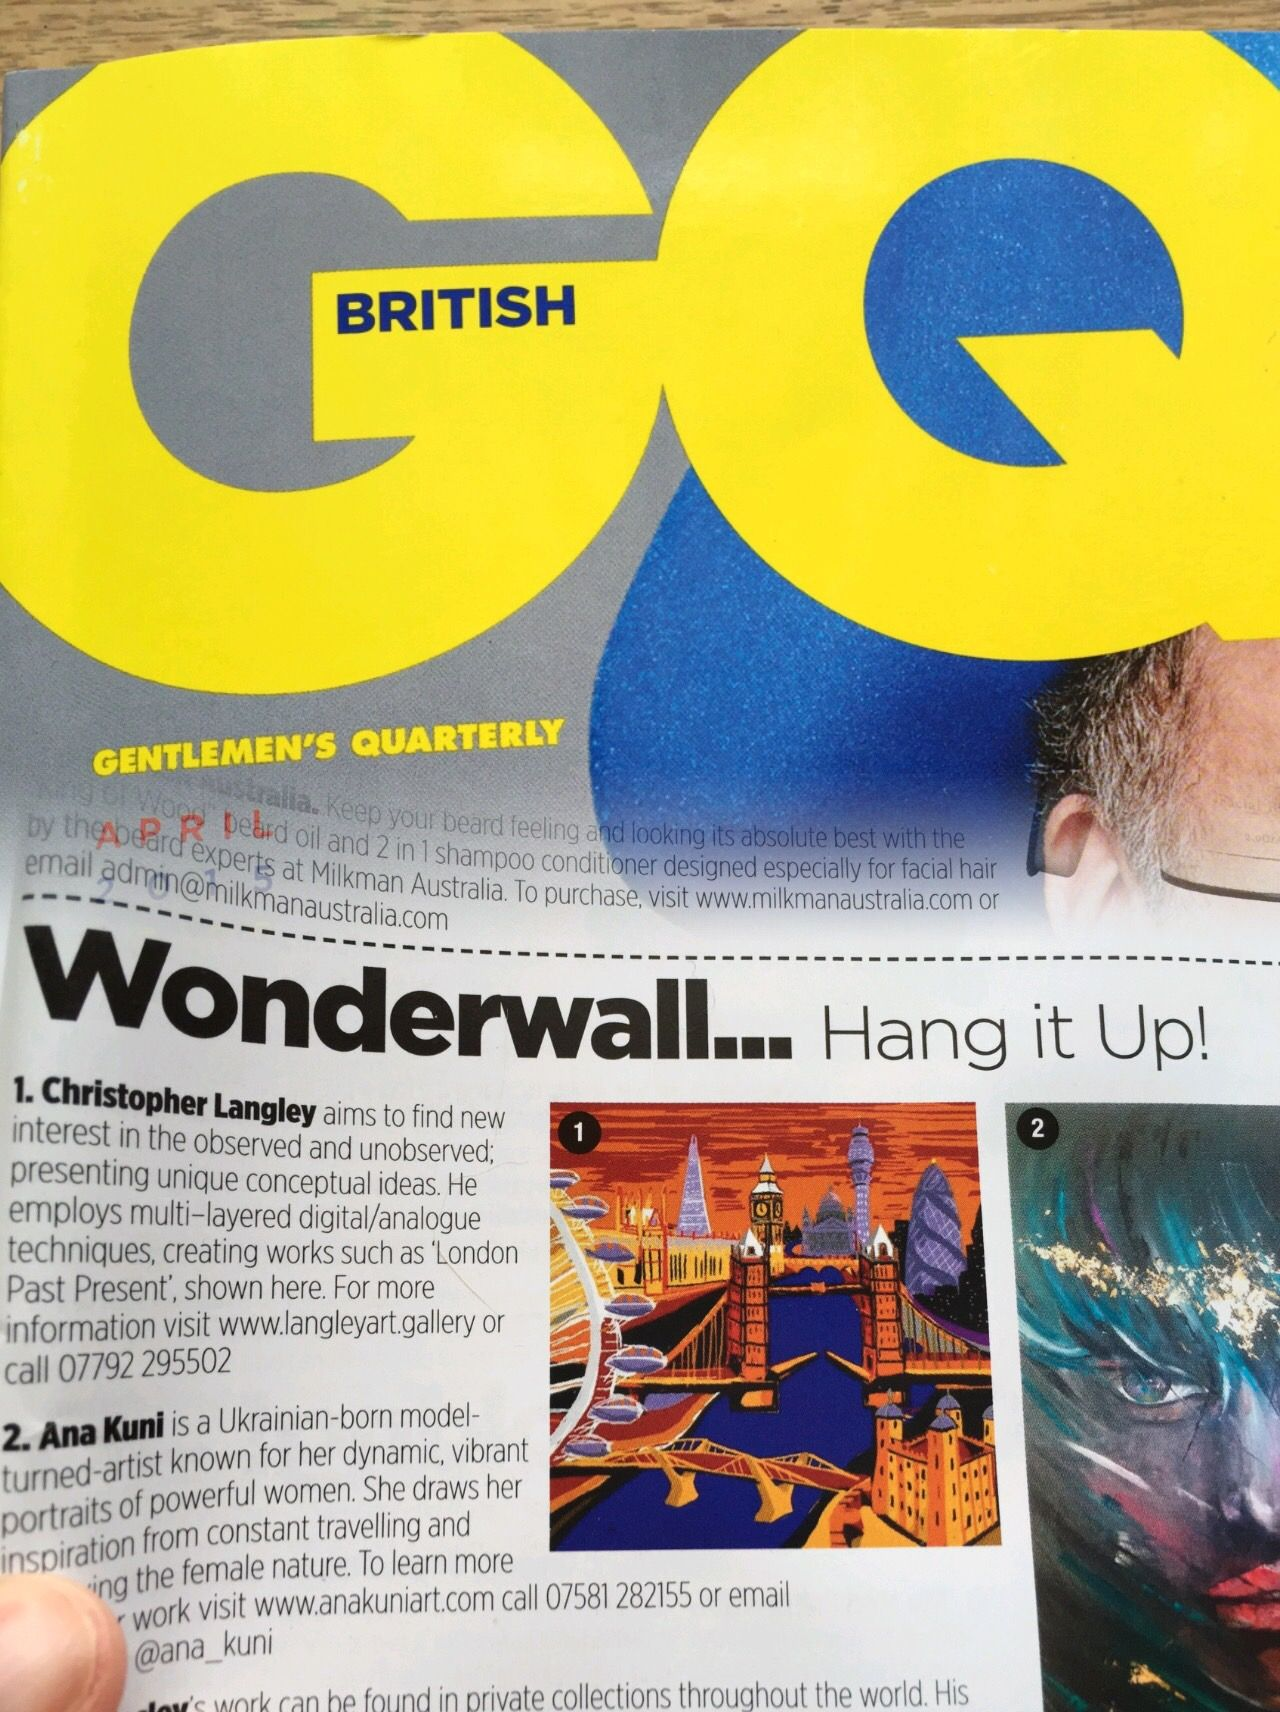 The work London Past Present has been featured in April 2015 edition of GQ Magazine.